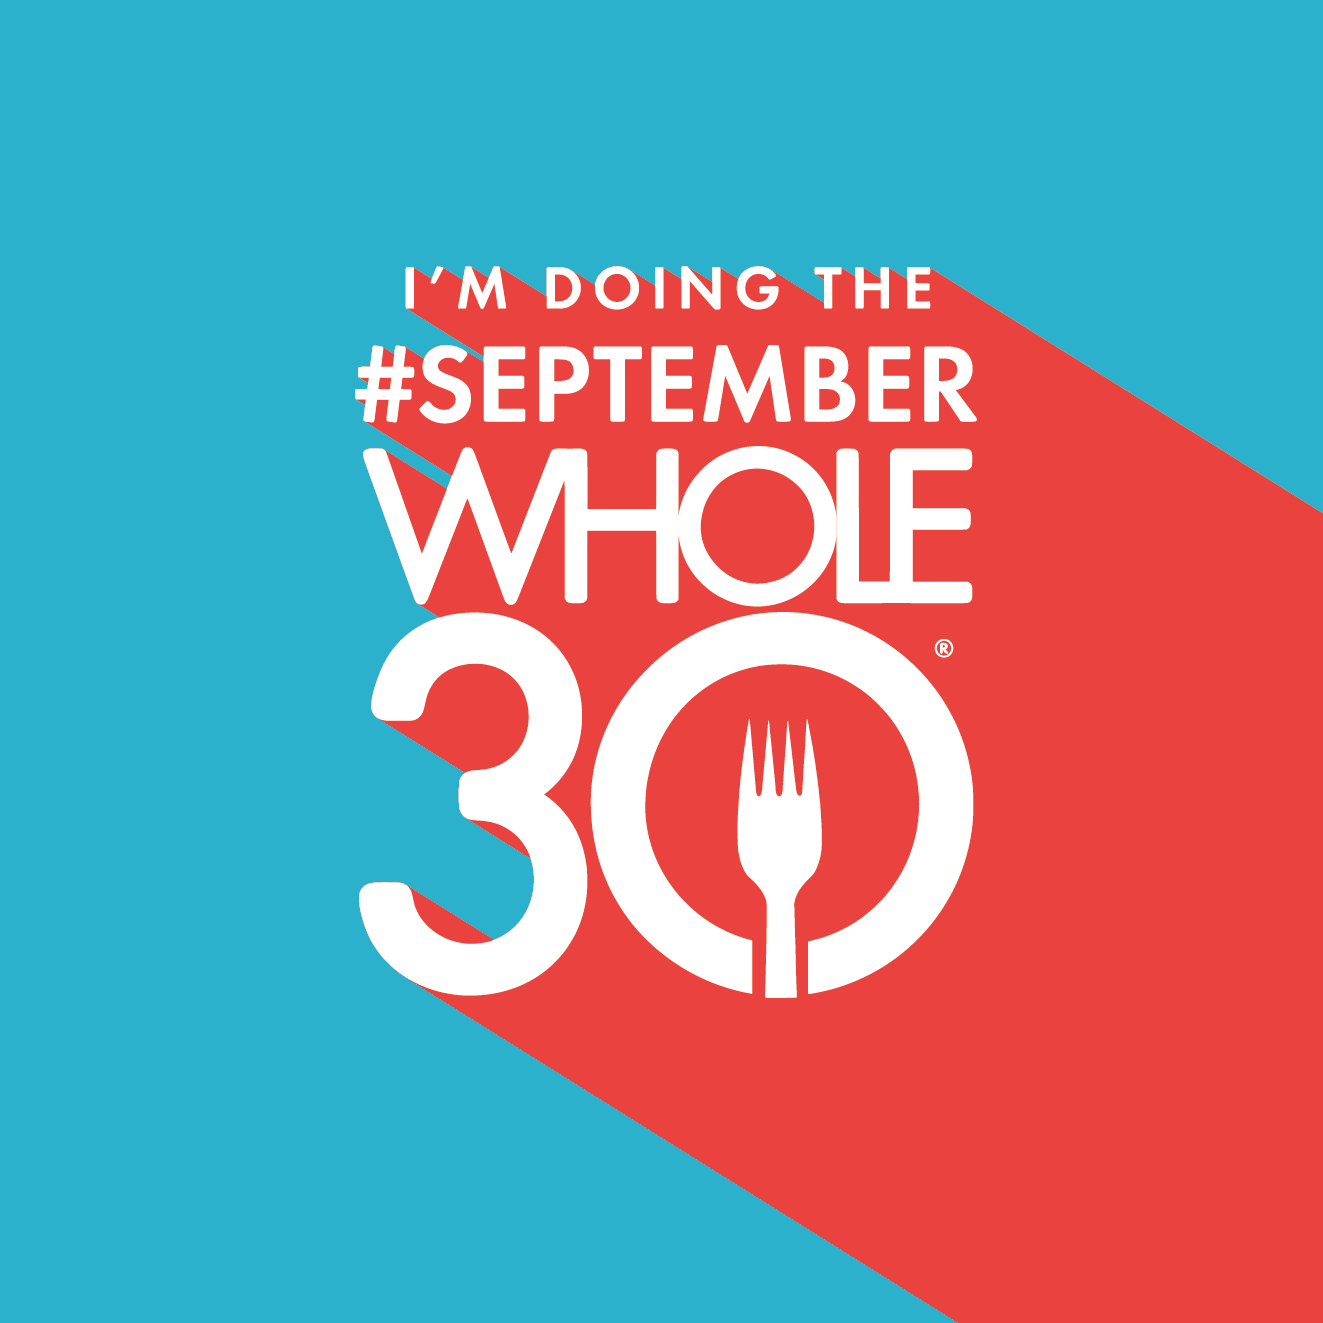 Your Exclusive #septemberwhole30 Share Graphics And